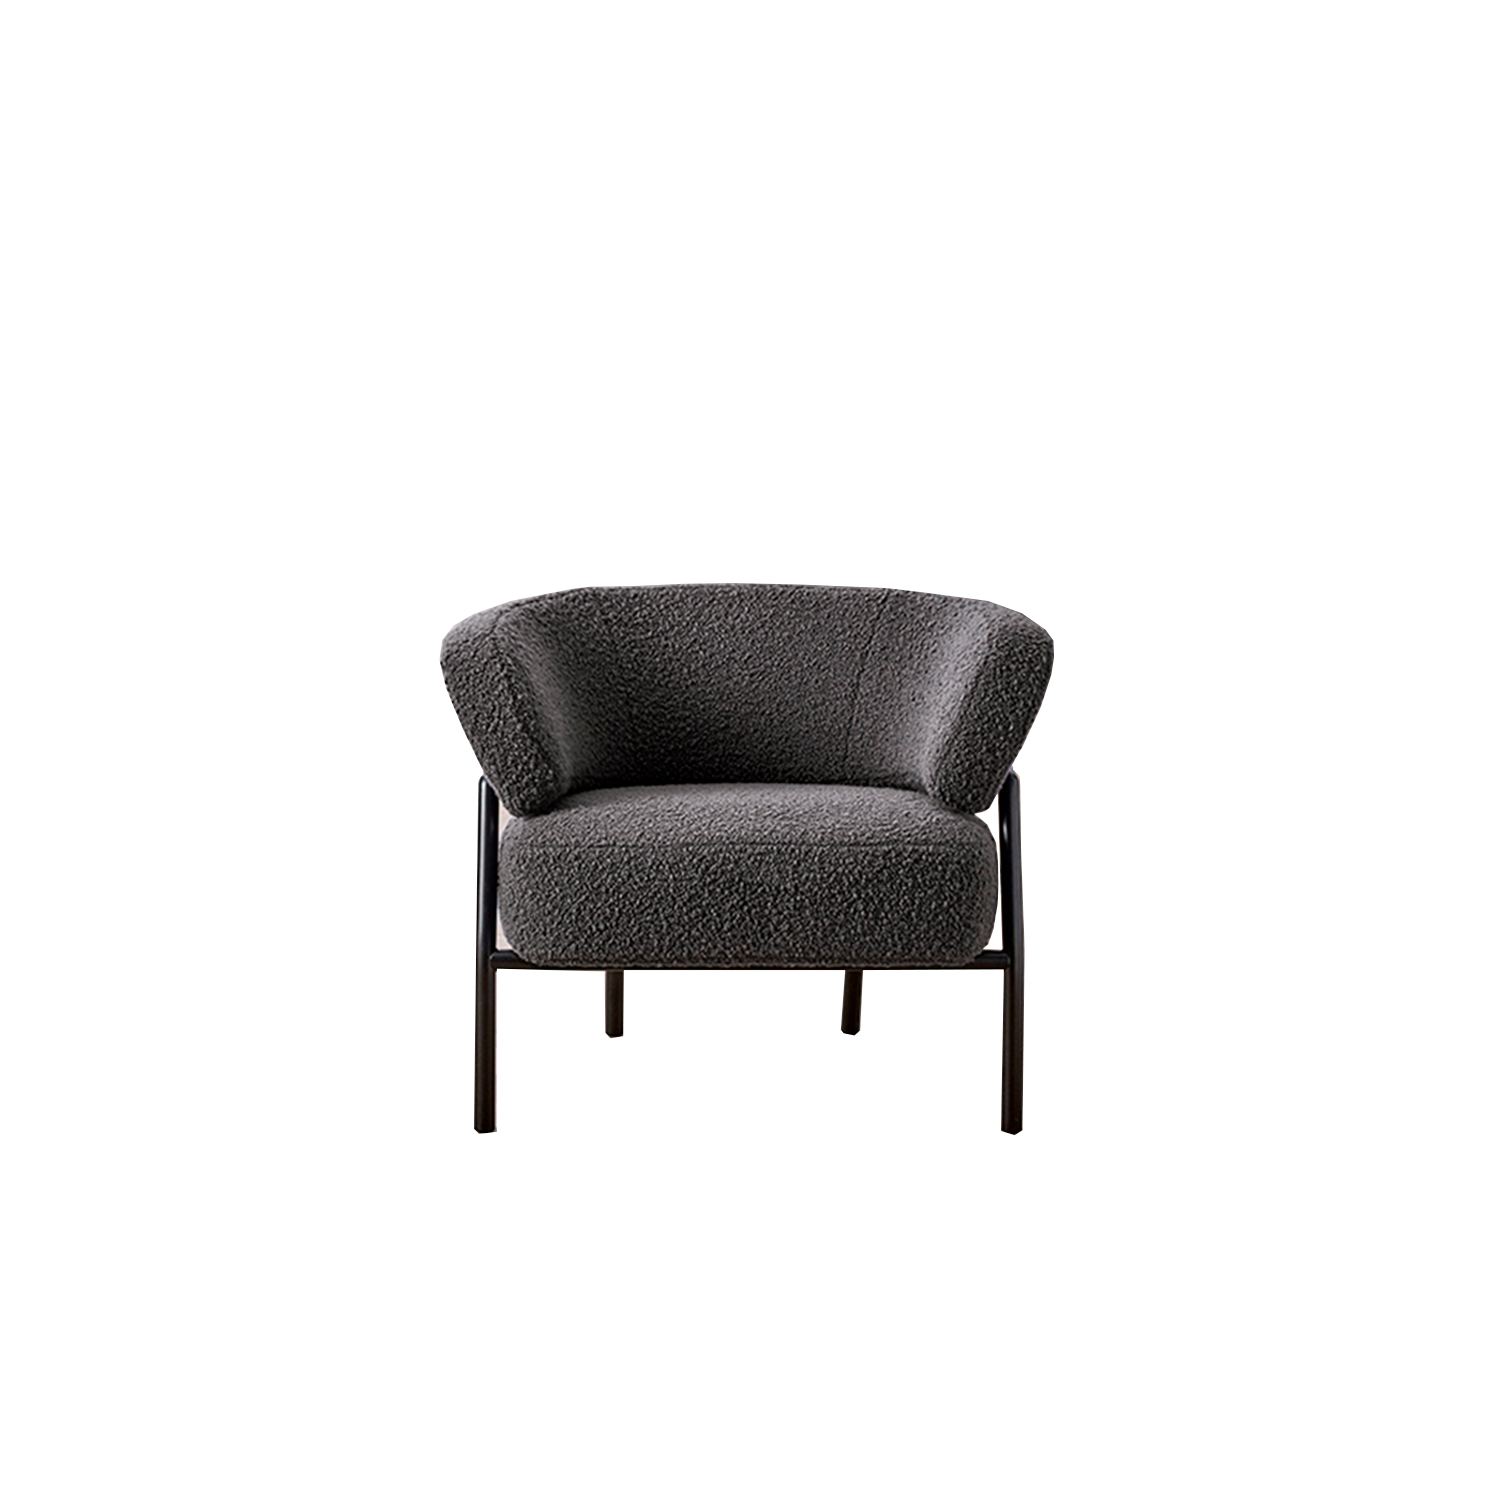 Nani' Lounge Armchair - A generously shaped armchair, characterized by a comfortable seat and embracing backrest, supported by a tubular metal structure. Back frame in POLIMEX® - a structural patented polymeric material, eco-friendly and ultralight.  The chair is available in different colour. Please enquire for more details | Matter of Stuff